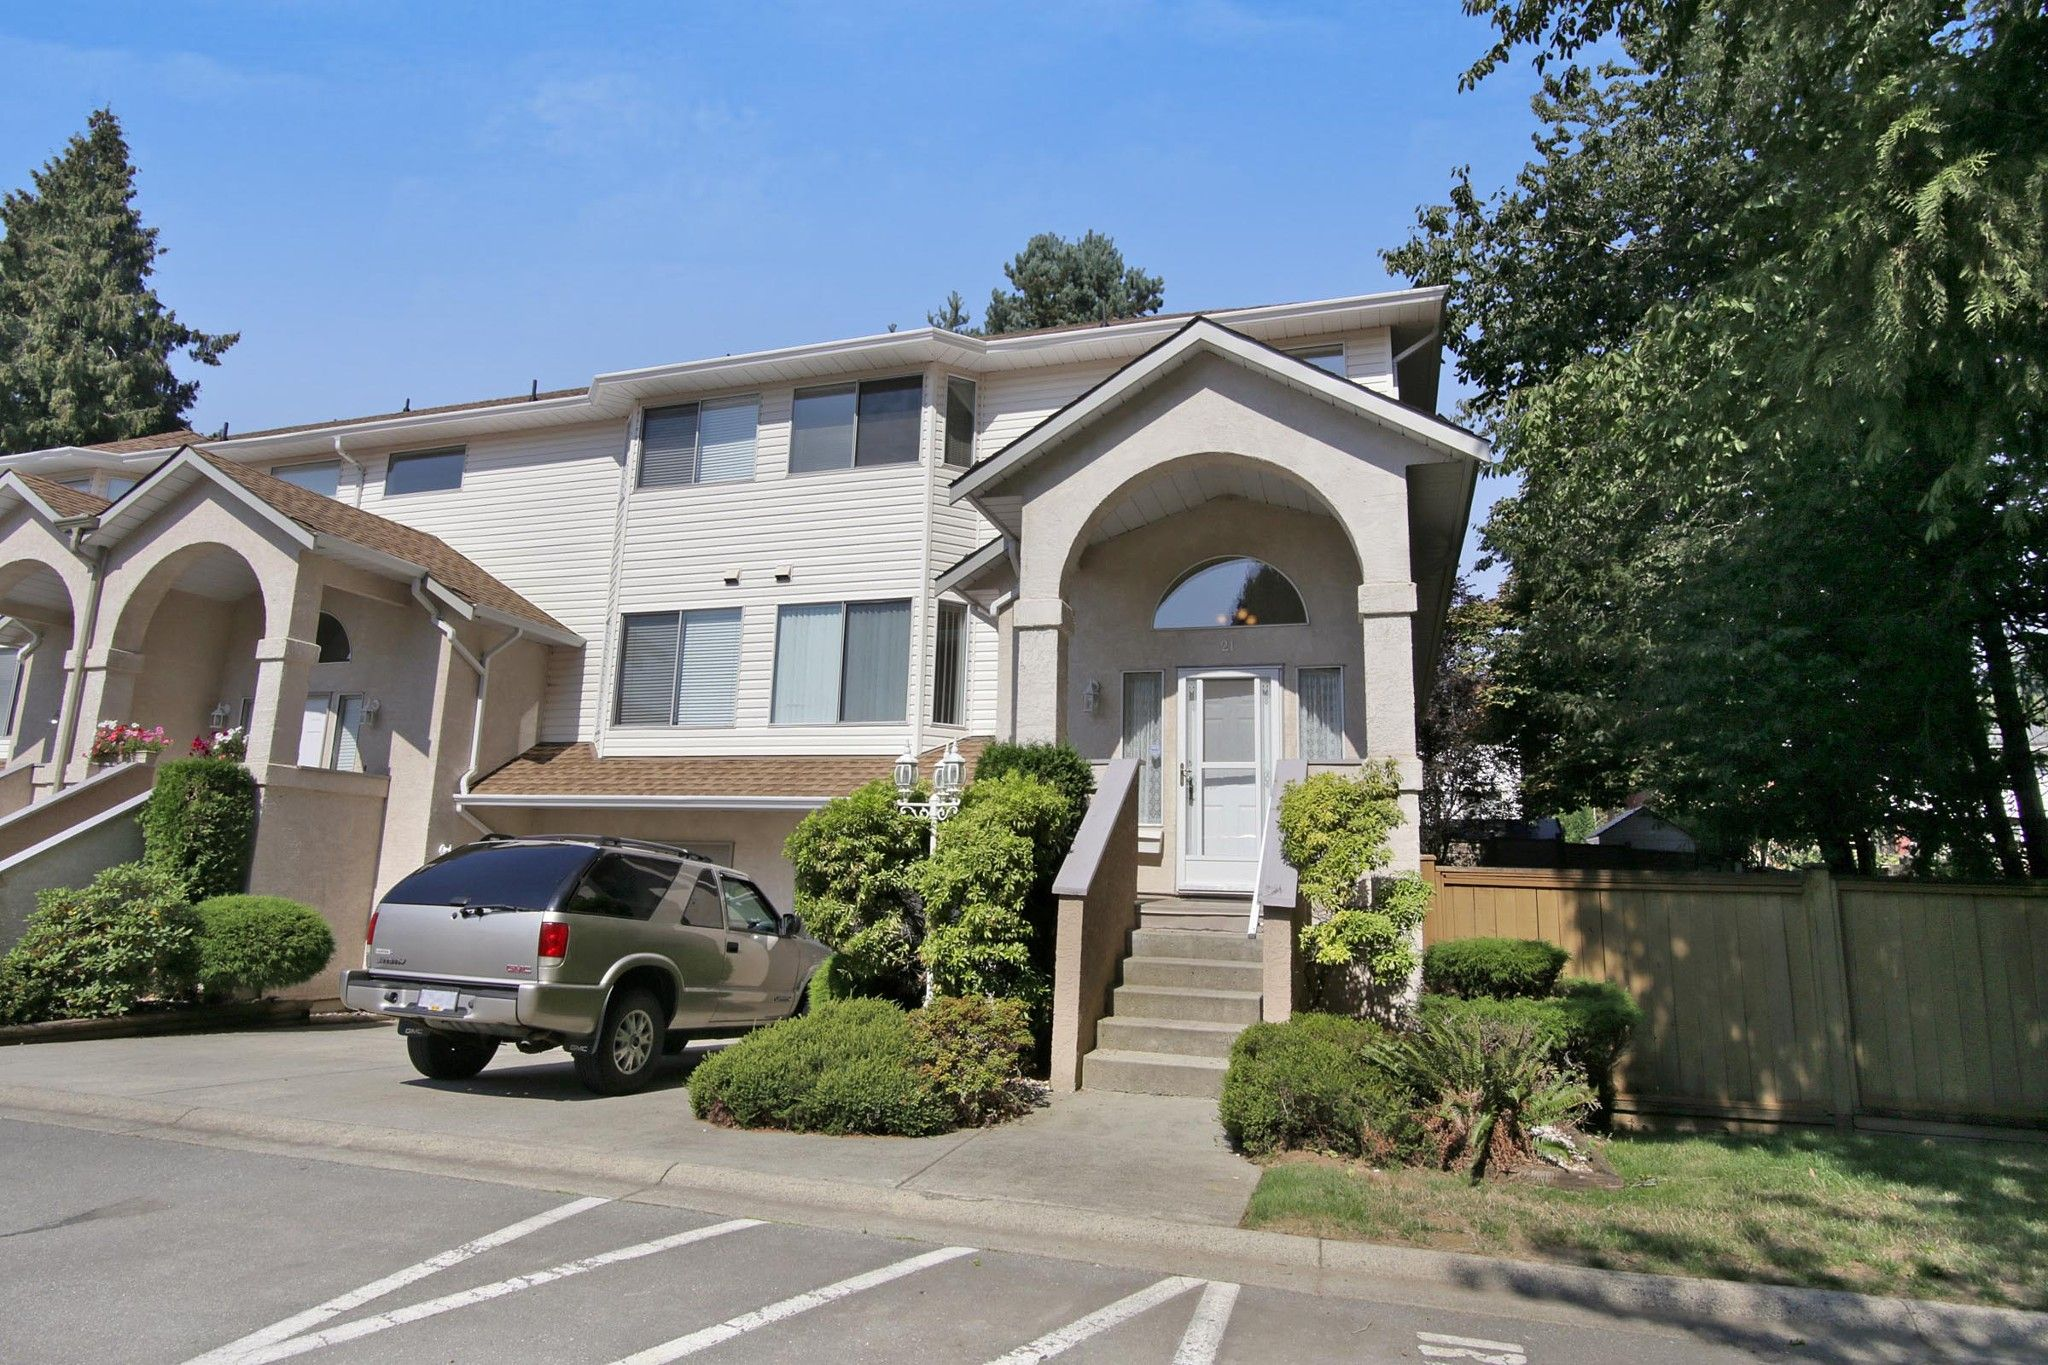 Main Photo: 21 32339 7 Avenue in Mission: Mission BC Townhouse for sale : MLS®# R2298453